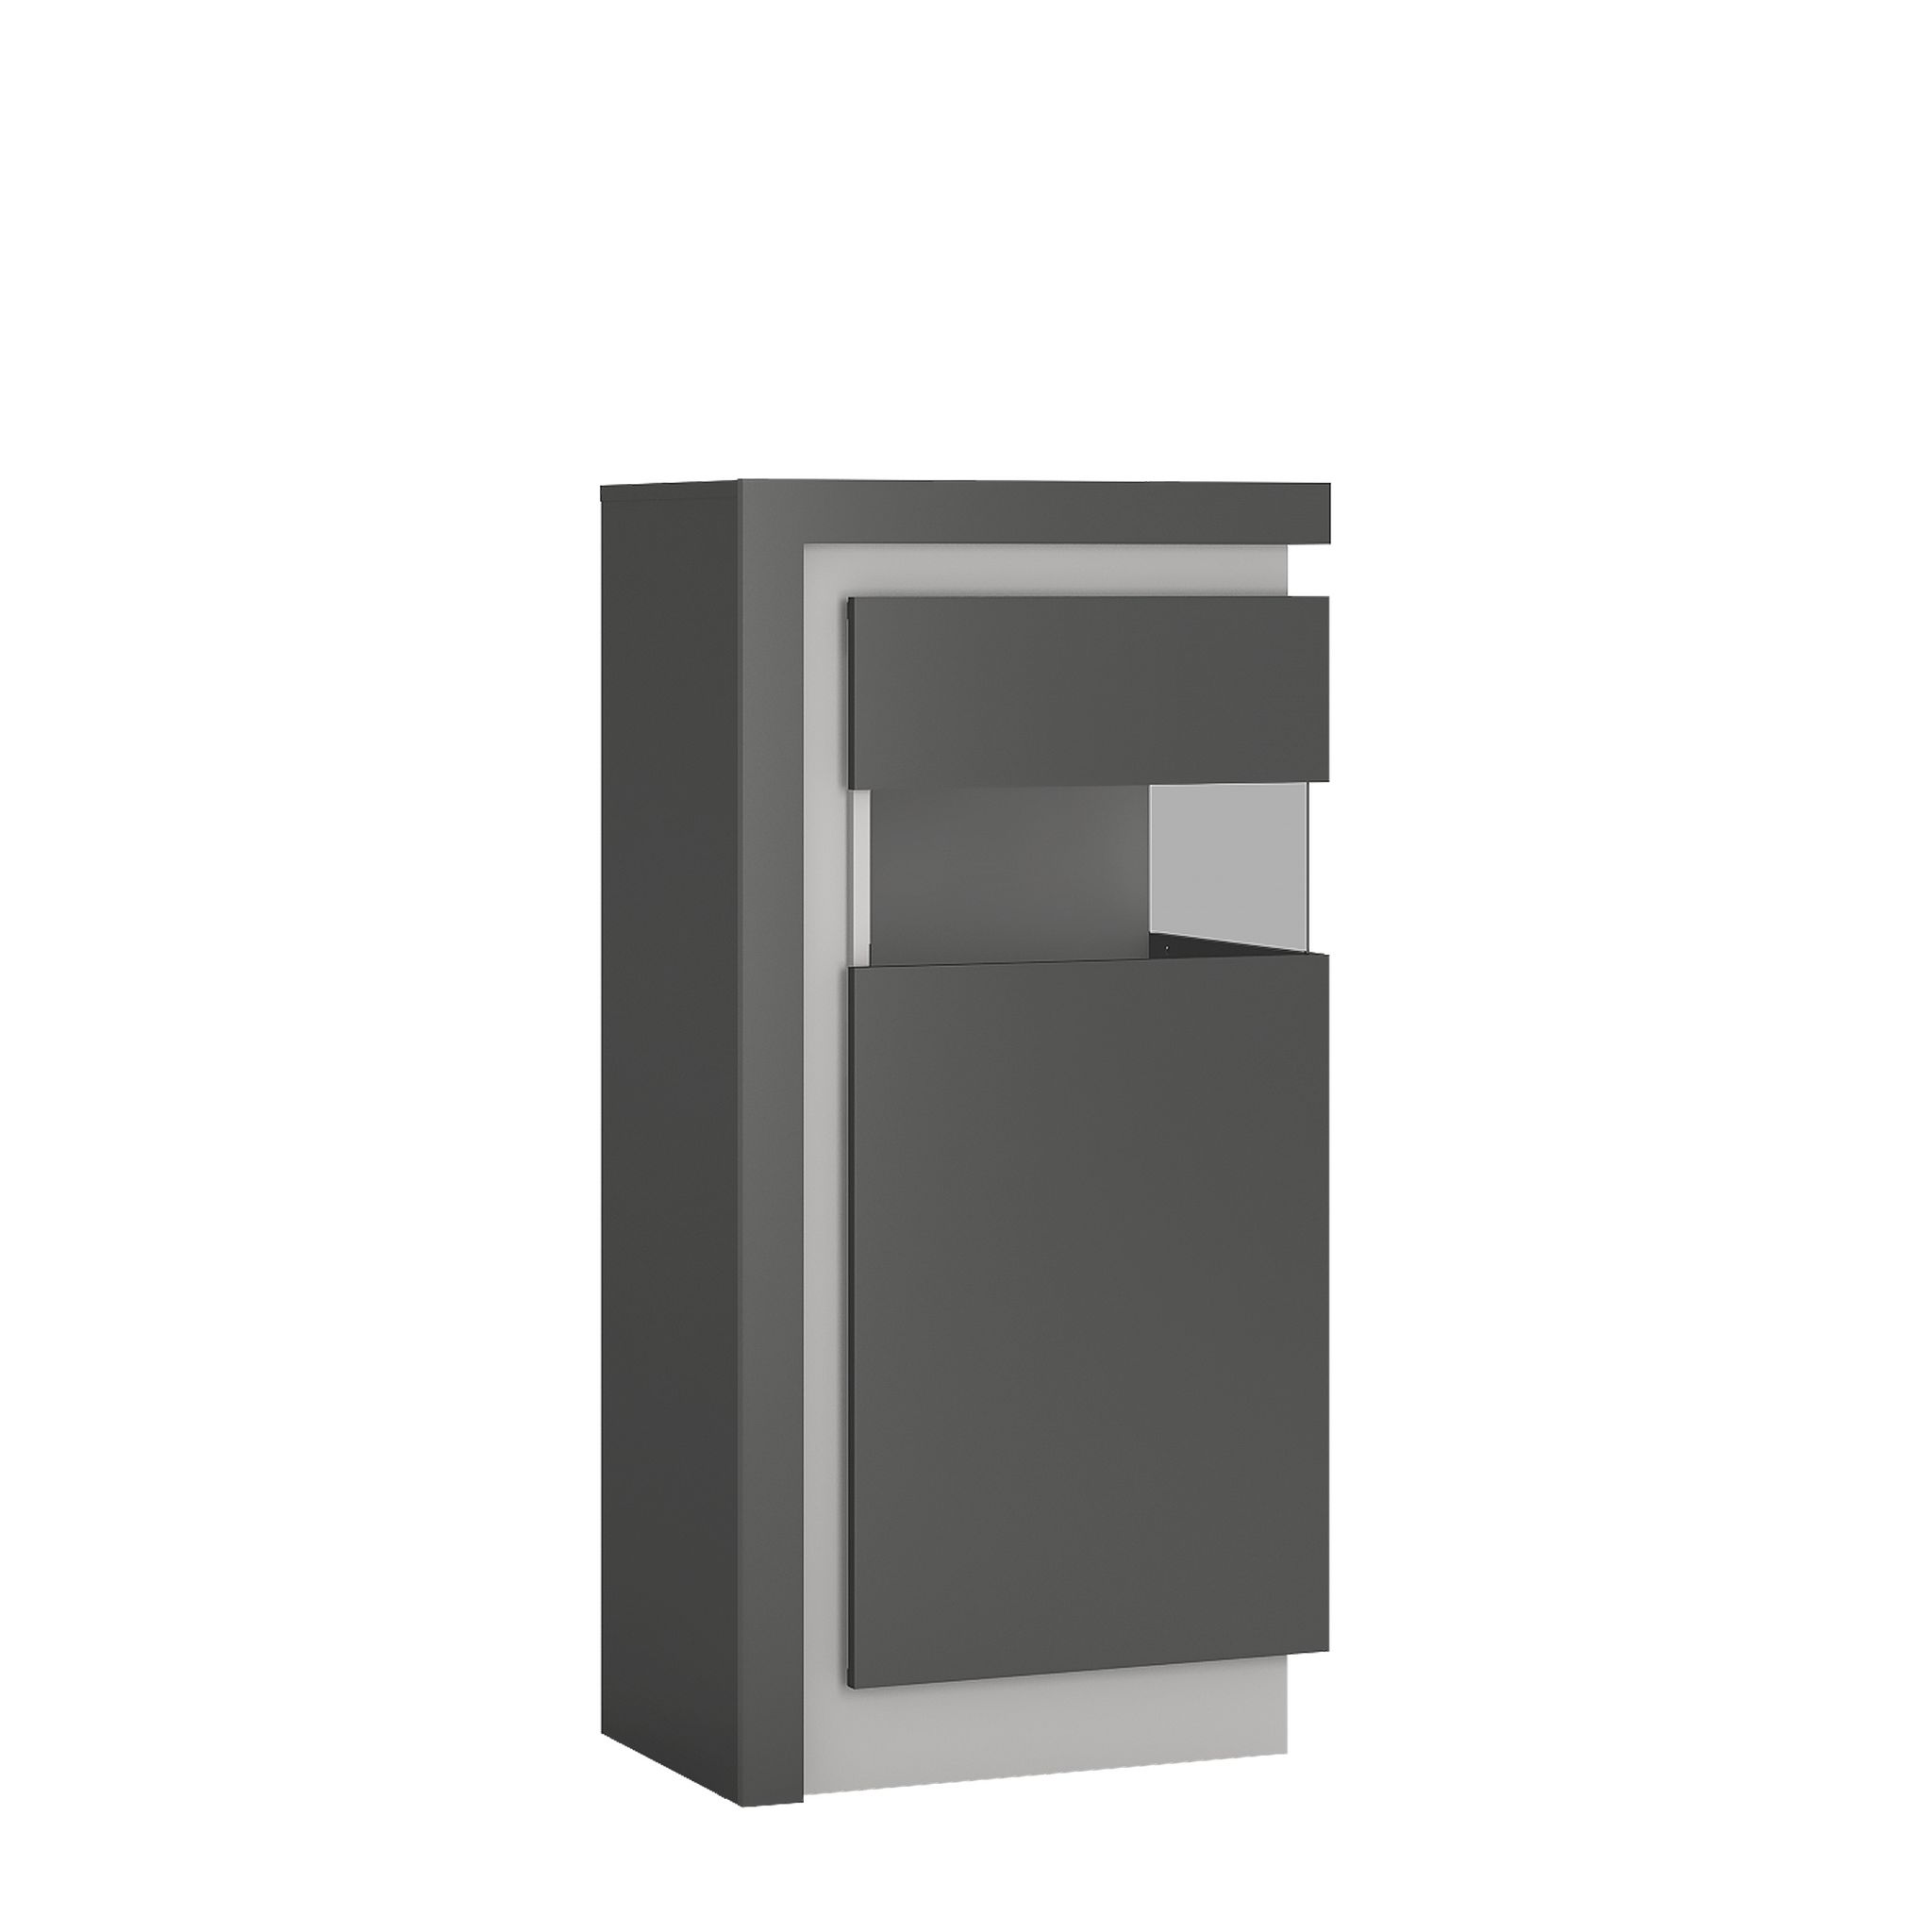 lyon narrow display cabinet rhd high in platinum light grey gloss. Black Bedroom Furniture Sets. Home Design Ideas